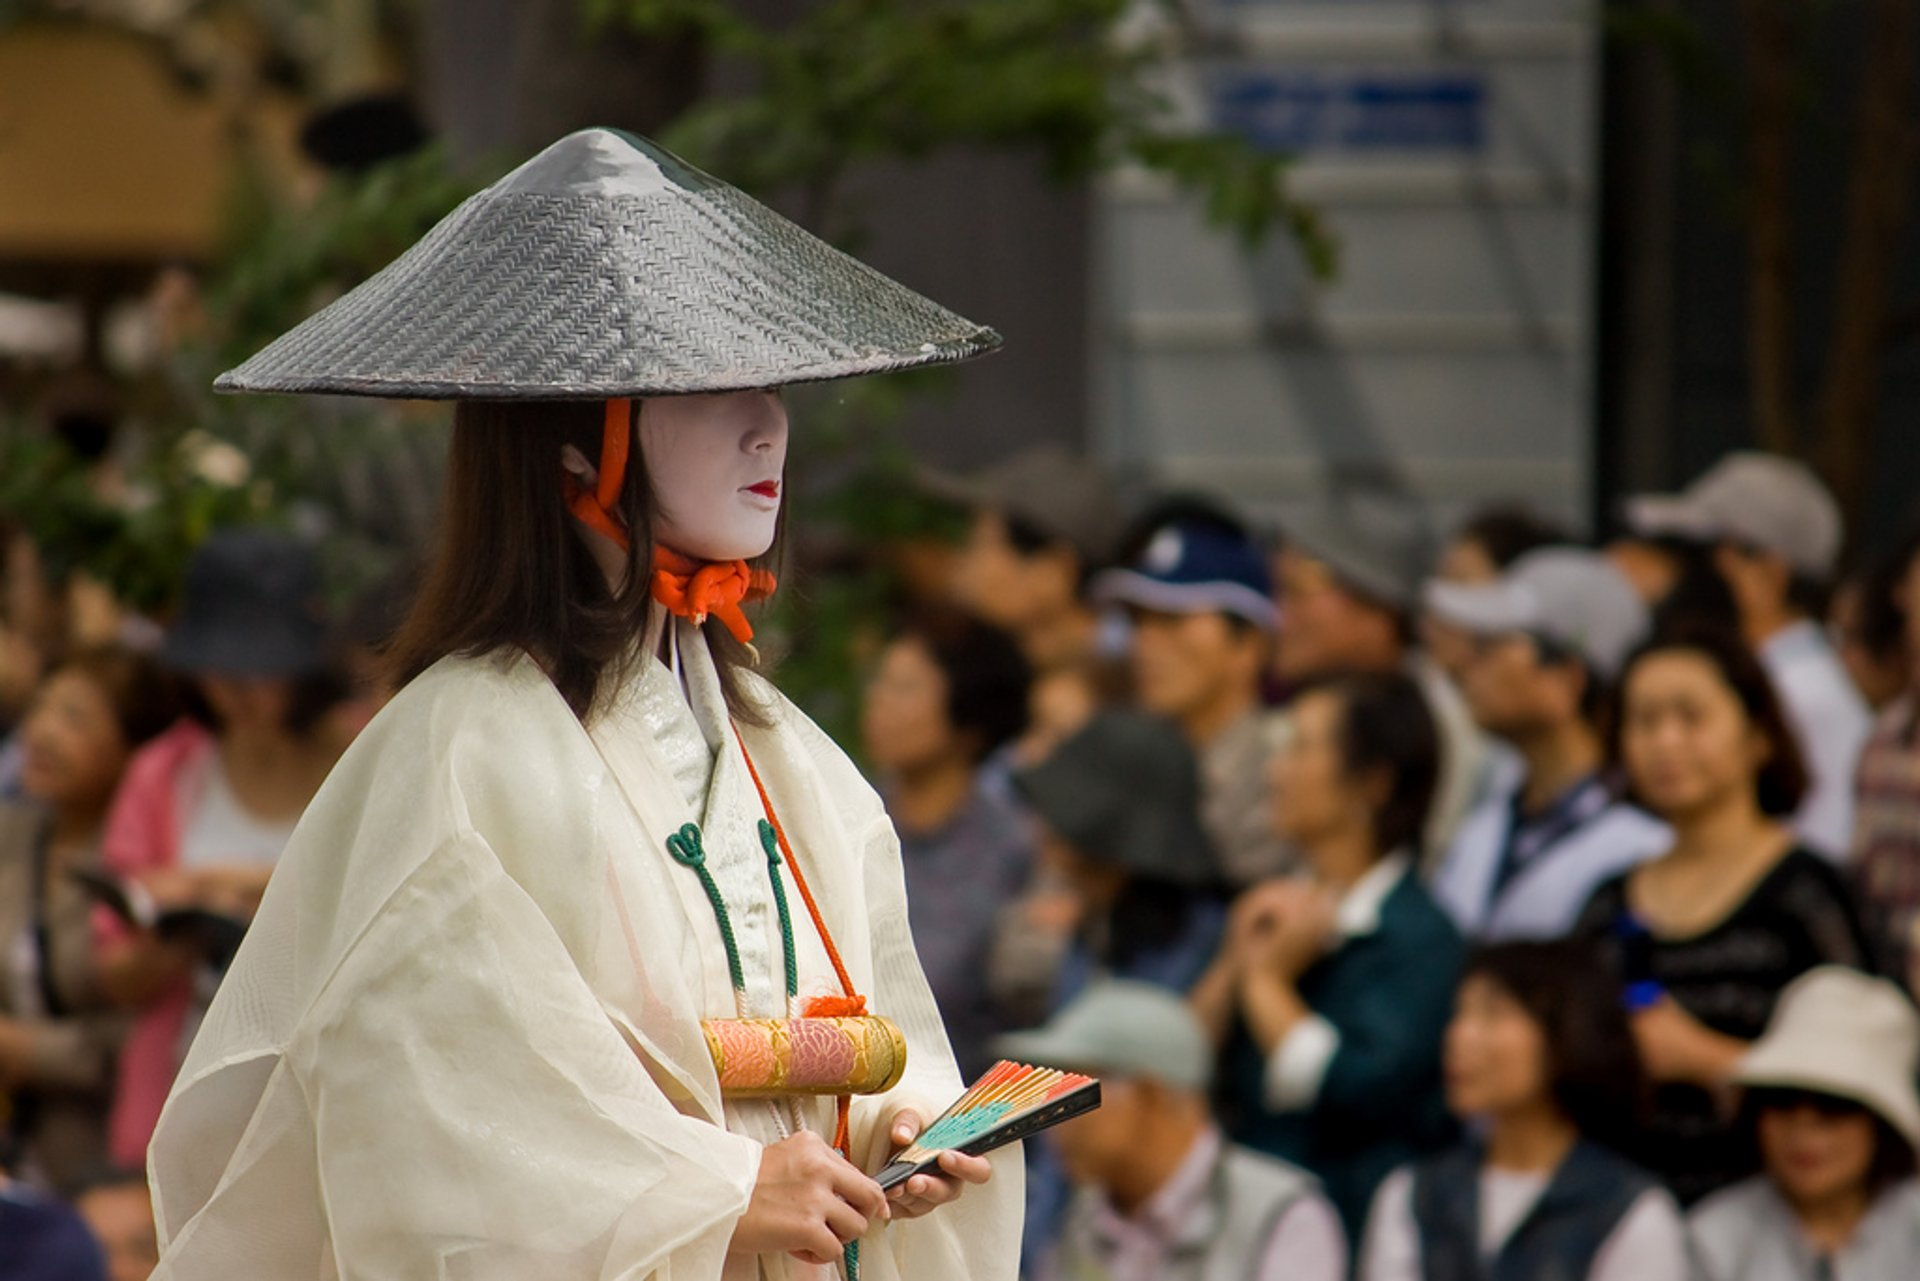 Best time for Jidai Matsuri (Festival)